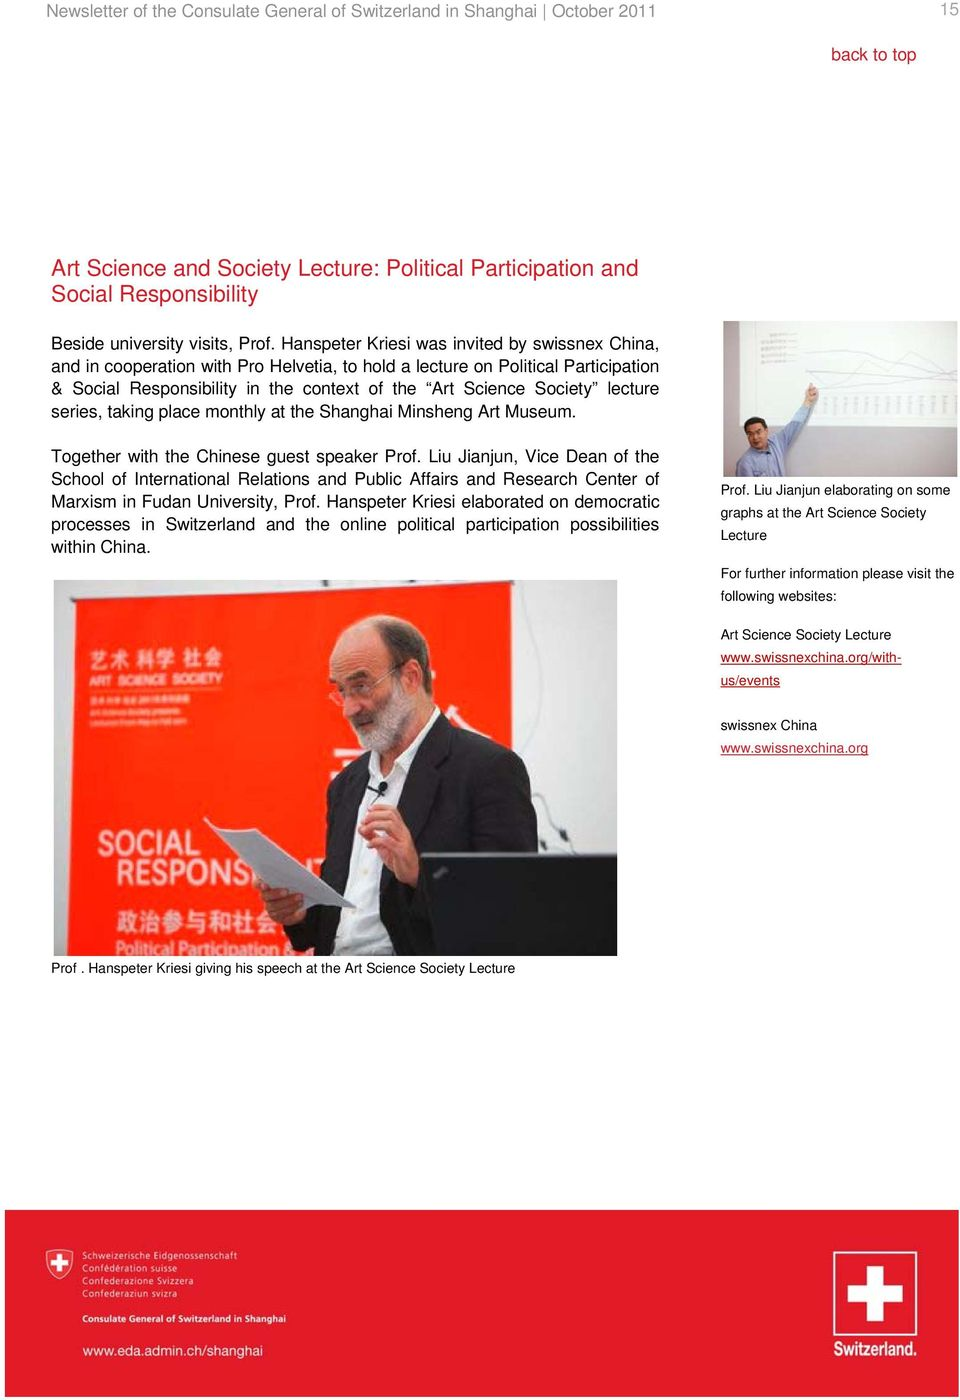 lecture series, taking place monthly at the Shanghai Minsheng Art Museum. Together with the Chinese guest speaker Prof.